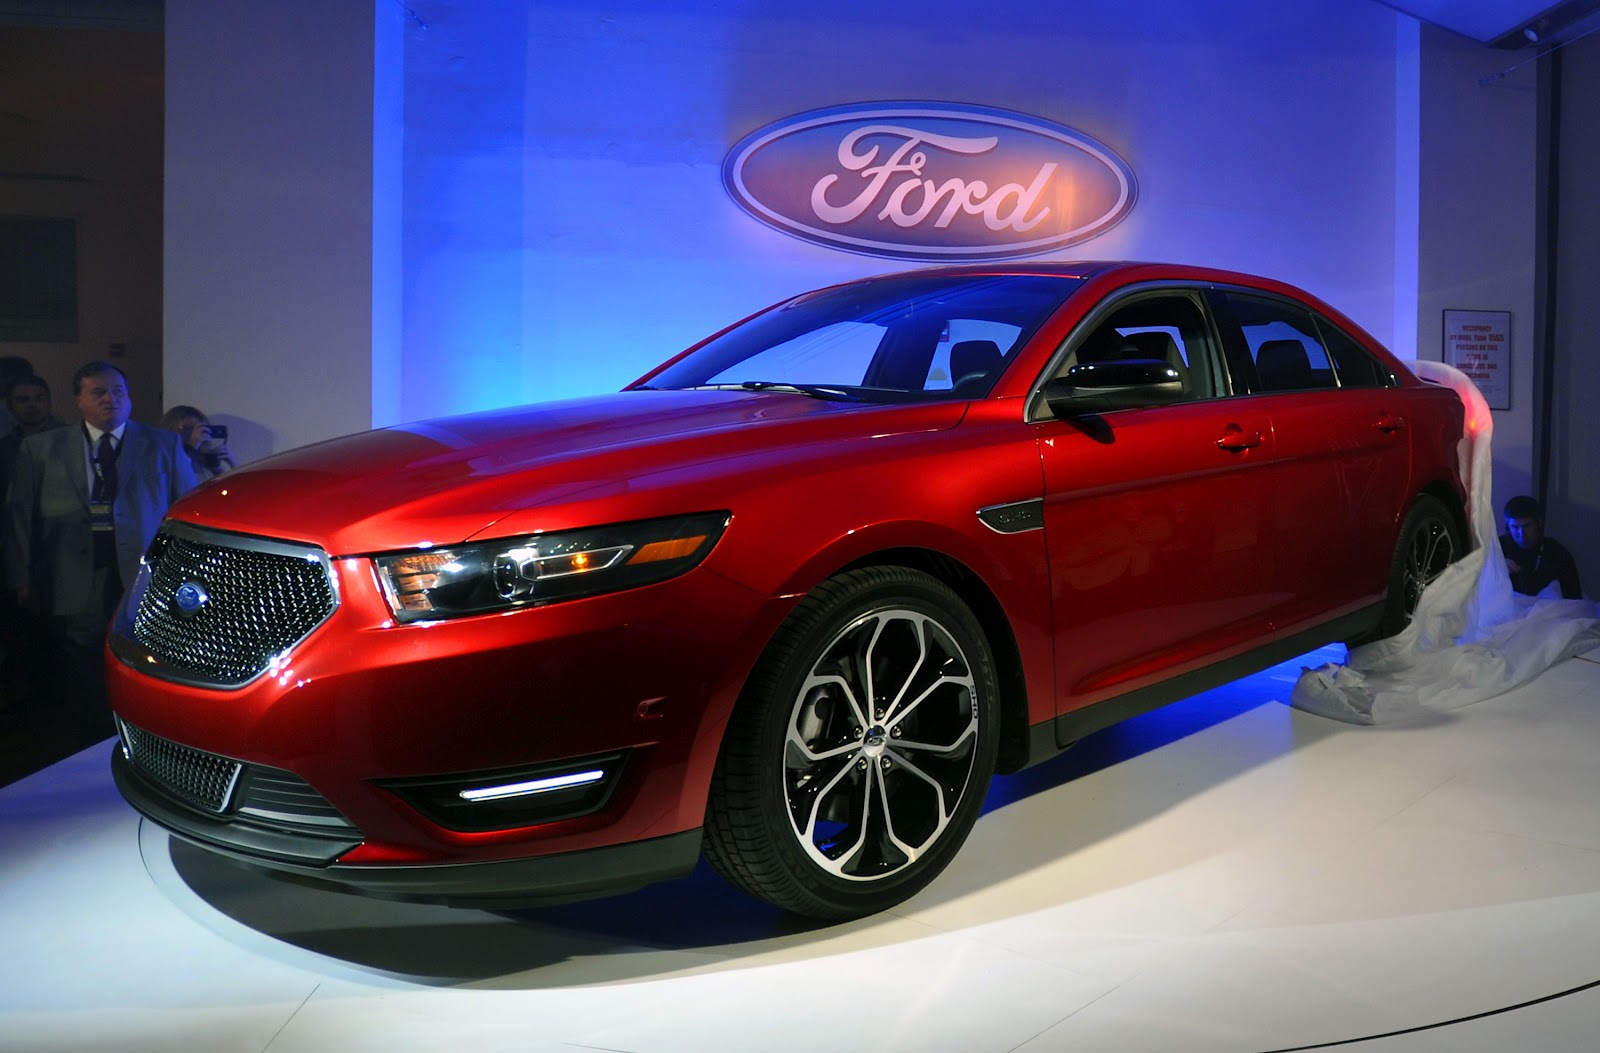 Sport Cars 2013 Ford Taurus Sho Good Car